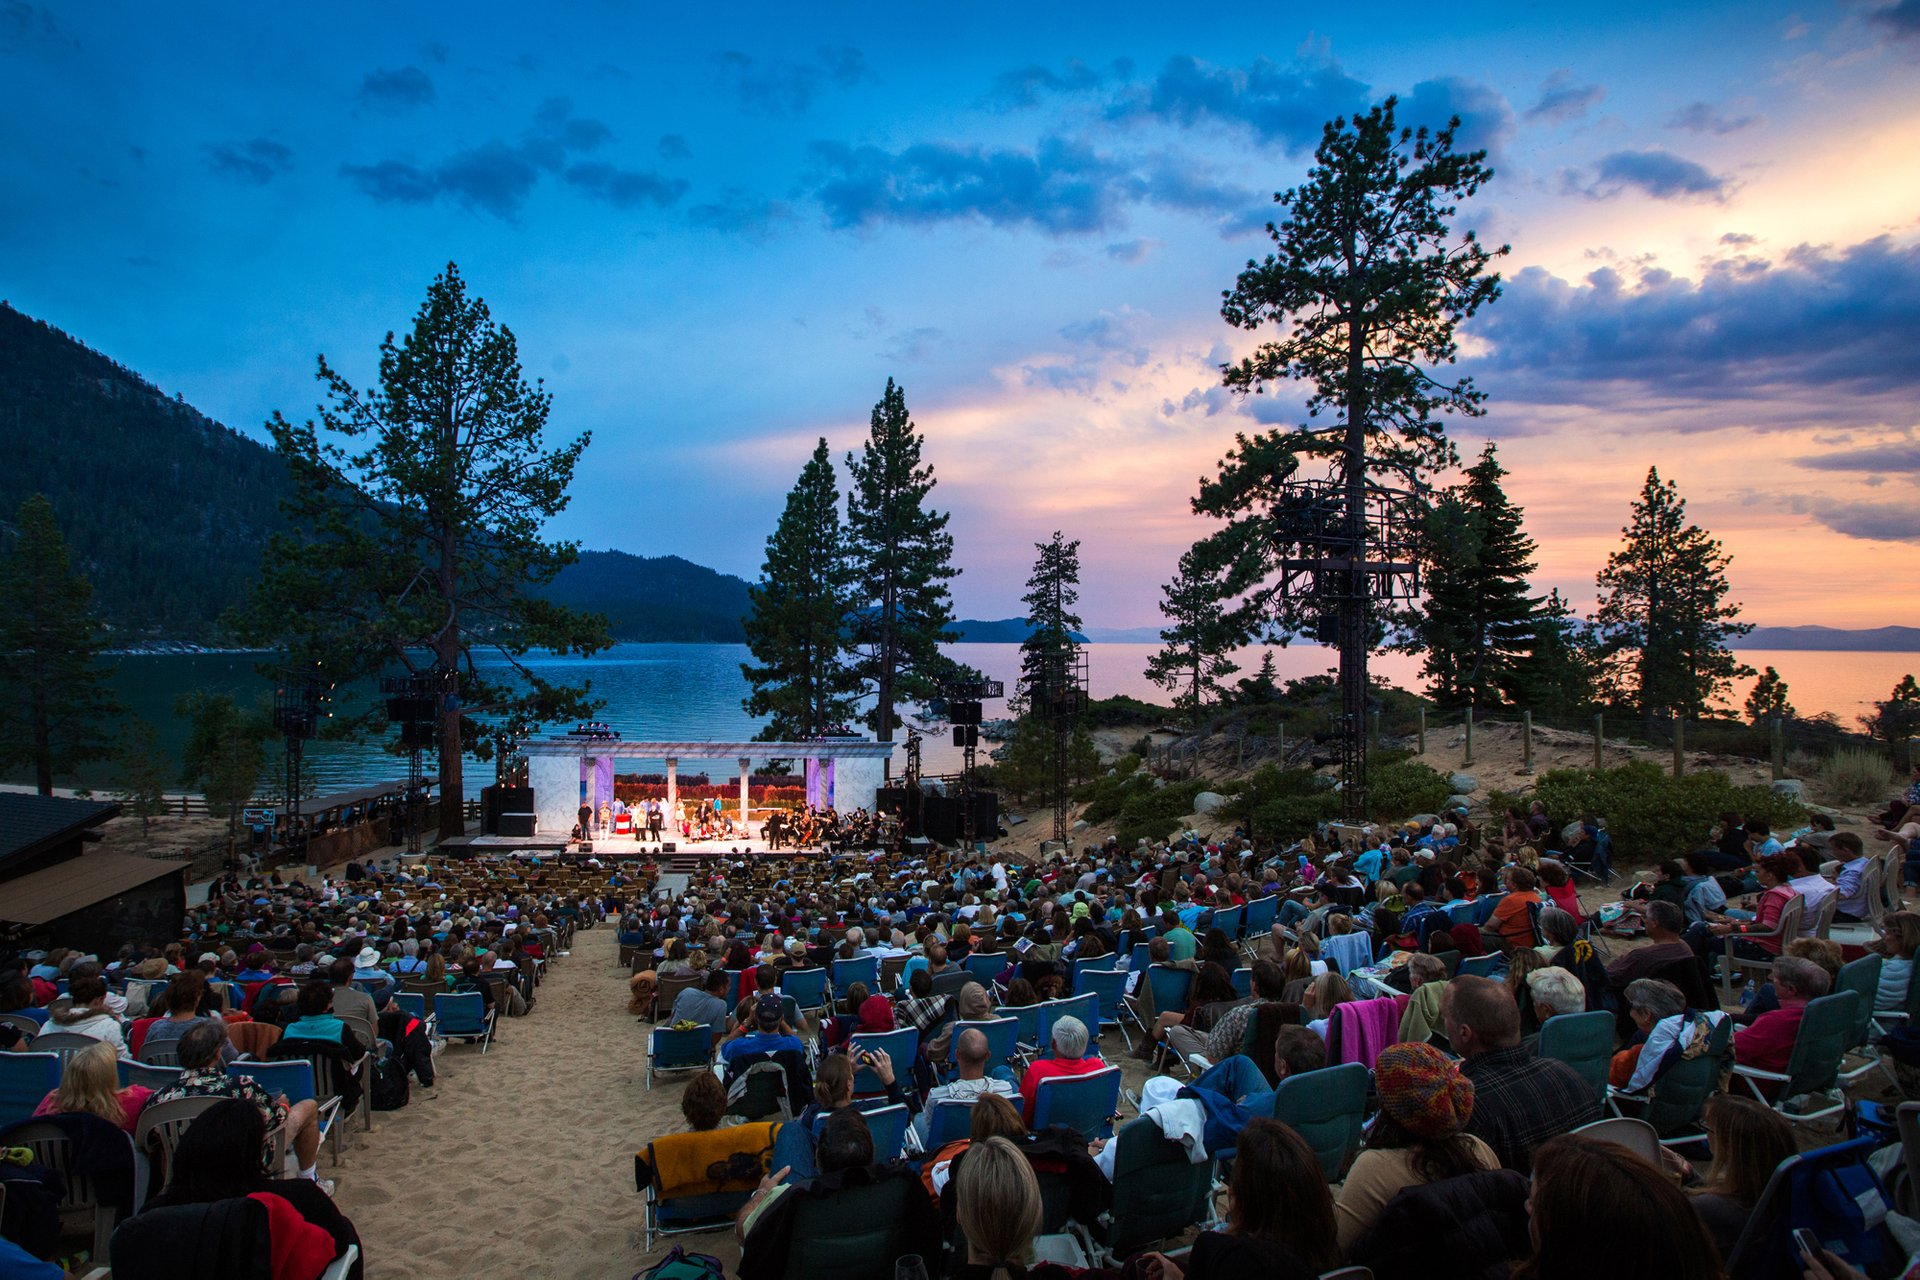 Lake Tahoe Shakespeare Festival in Lake Tahoe 2019 - Best Time